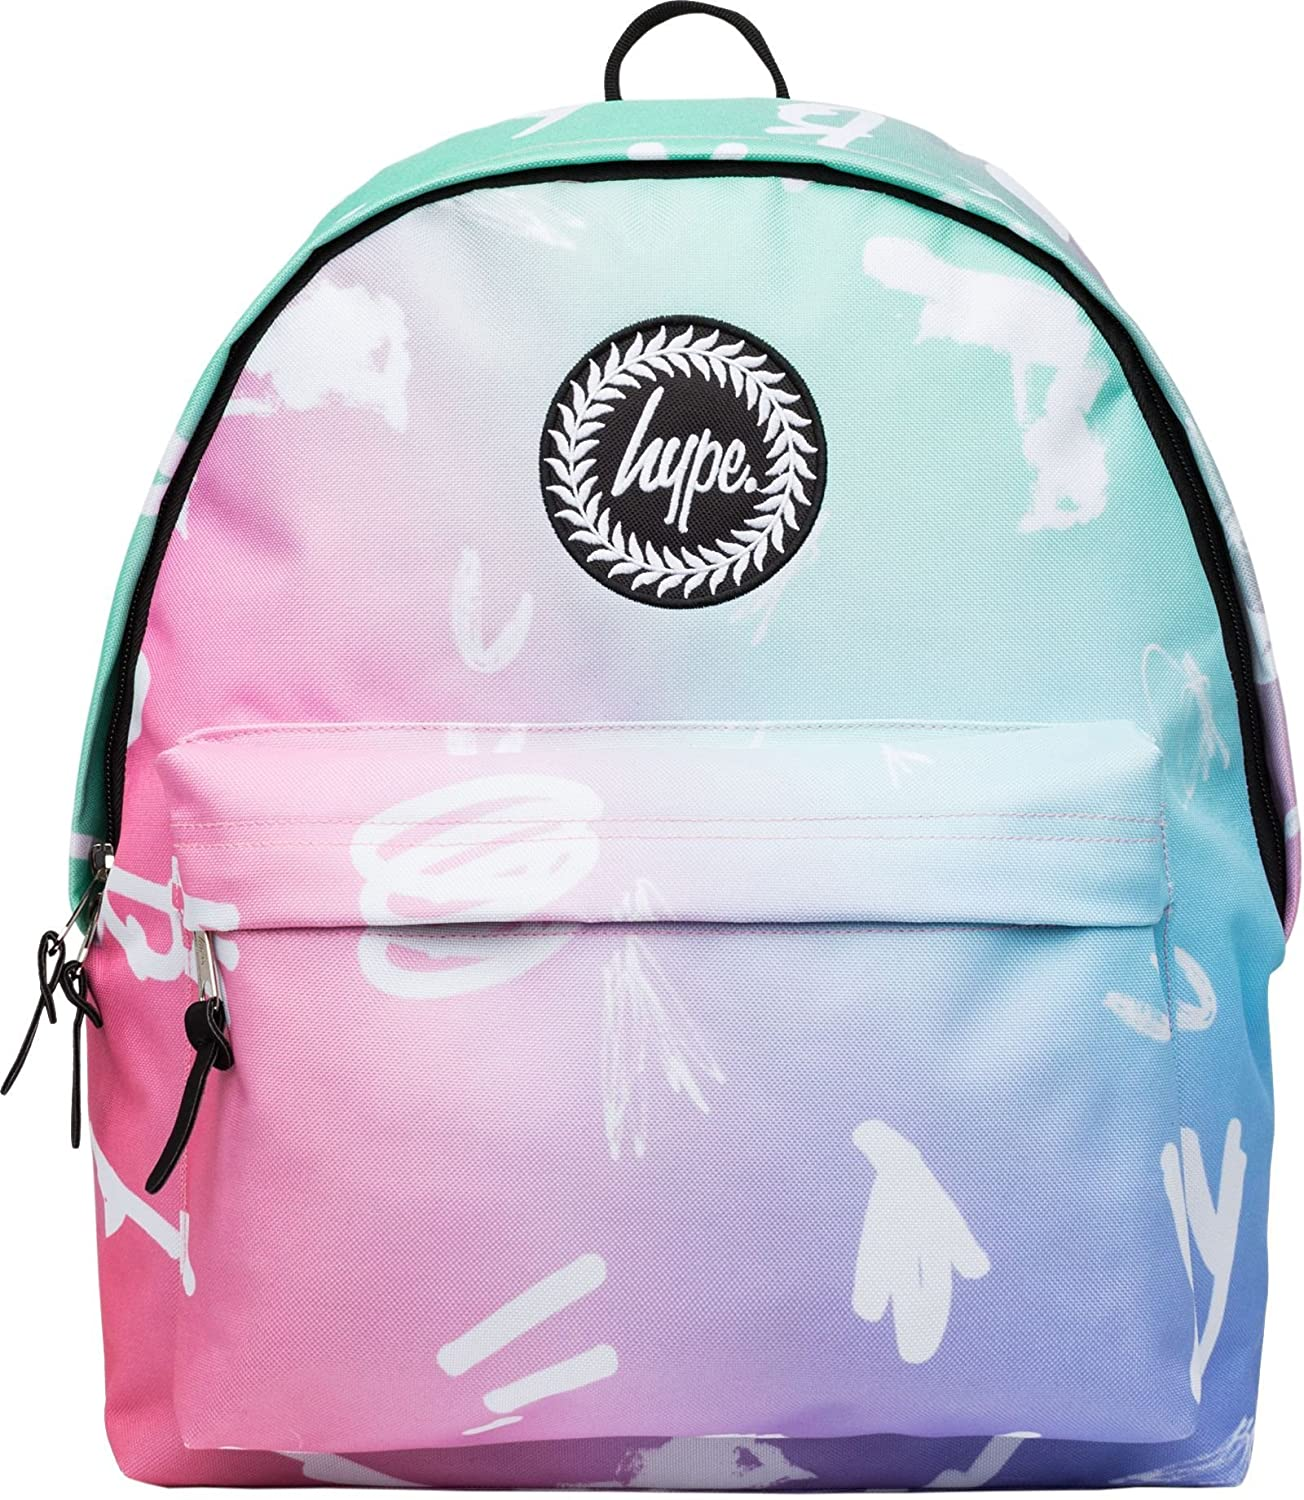 24e86b7216 Hype Backpack Bag - Rainbow Scribble Rucksack - Bags   Backpacks For Boys  and Girls Women and Men - Rainbow Scribble  Amazon.co.uk  Luggage